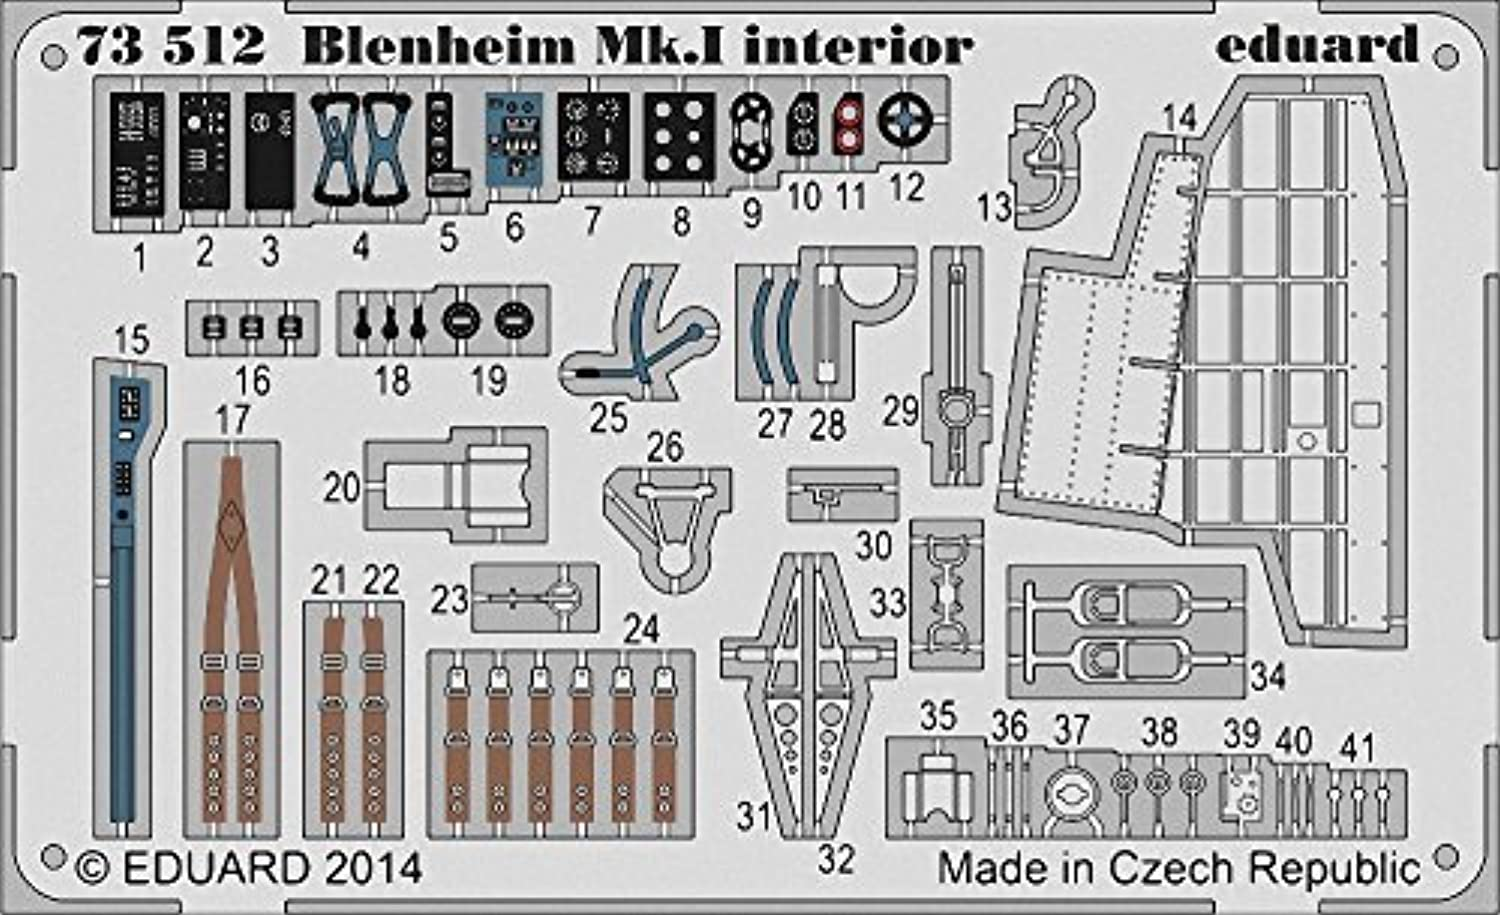 EDU73512 1 72 Eduard Farbe PE - Blenheim Mk.I Interior Detail Set (for use with the Airfix kit) [MODEL KIT ACCESSORY] by Eduard